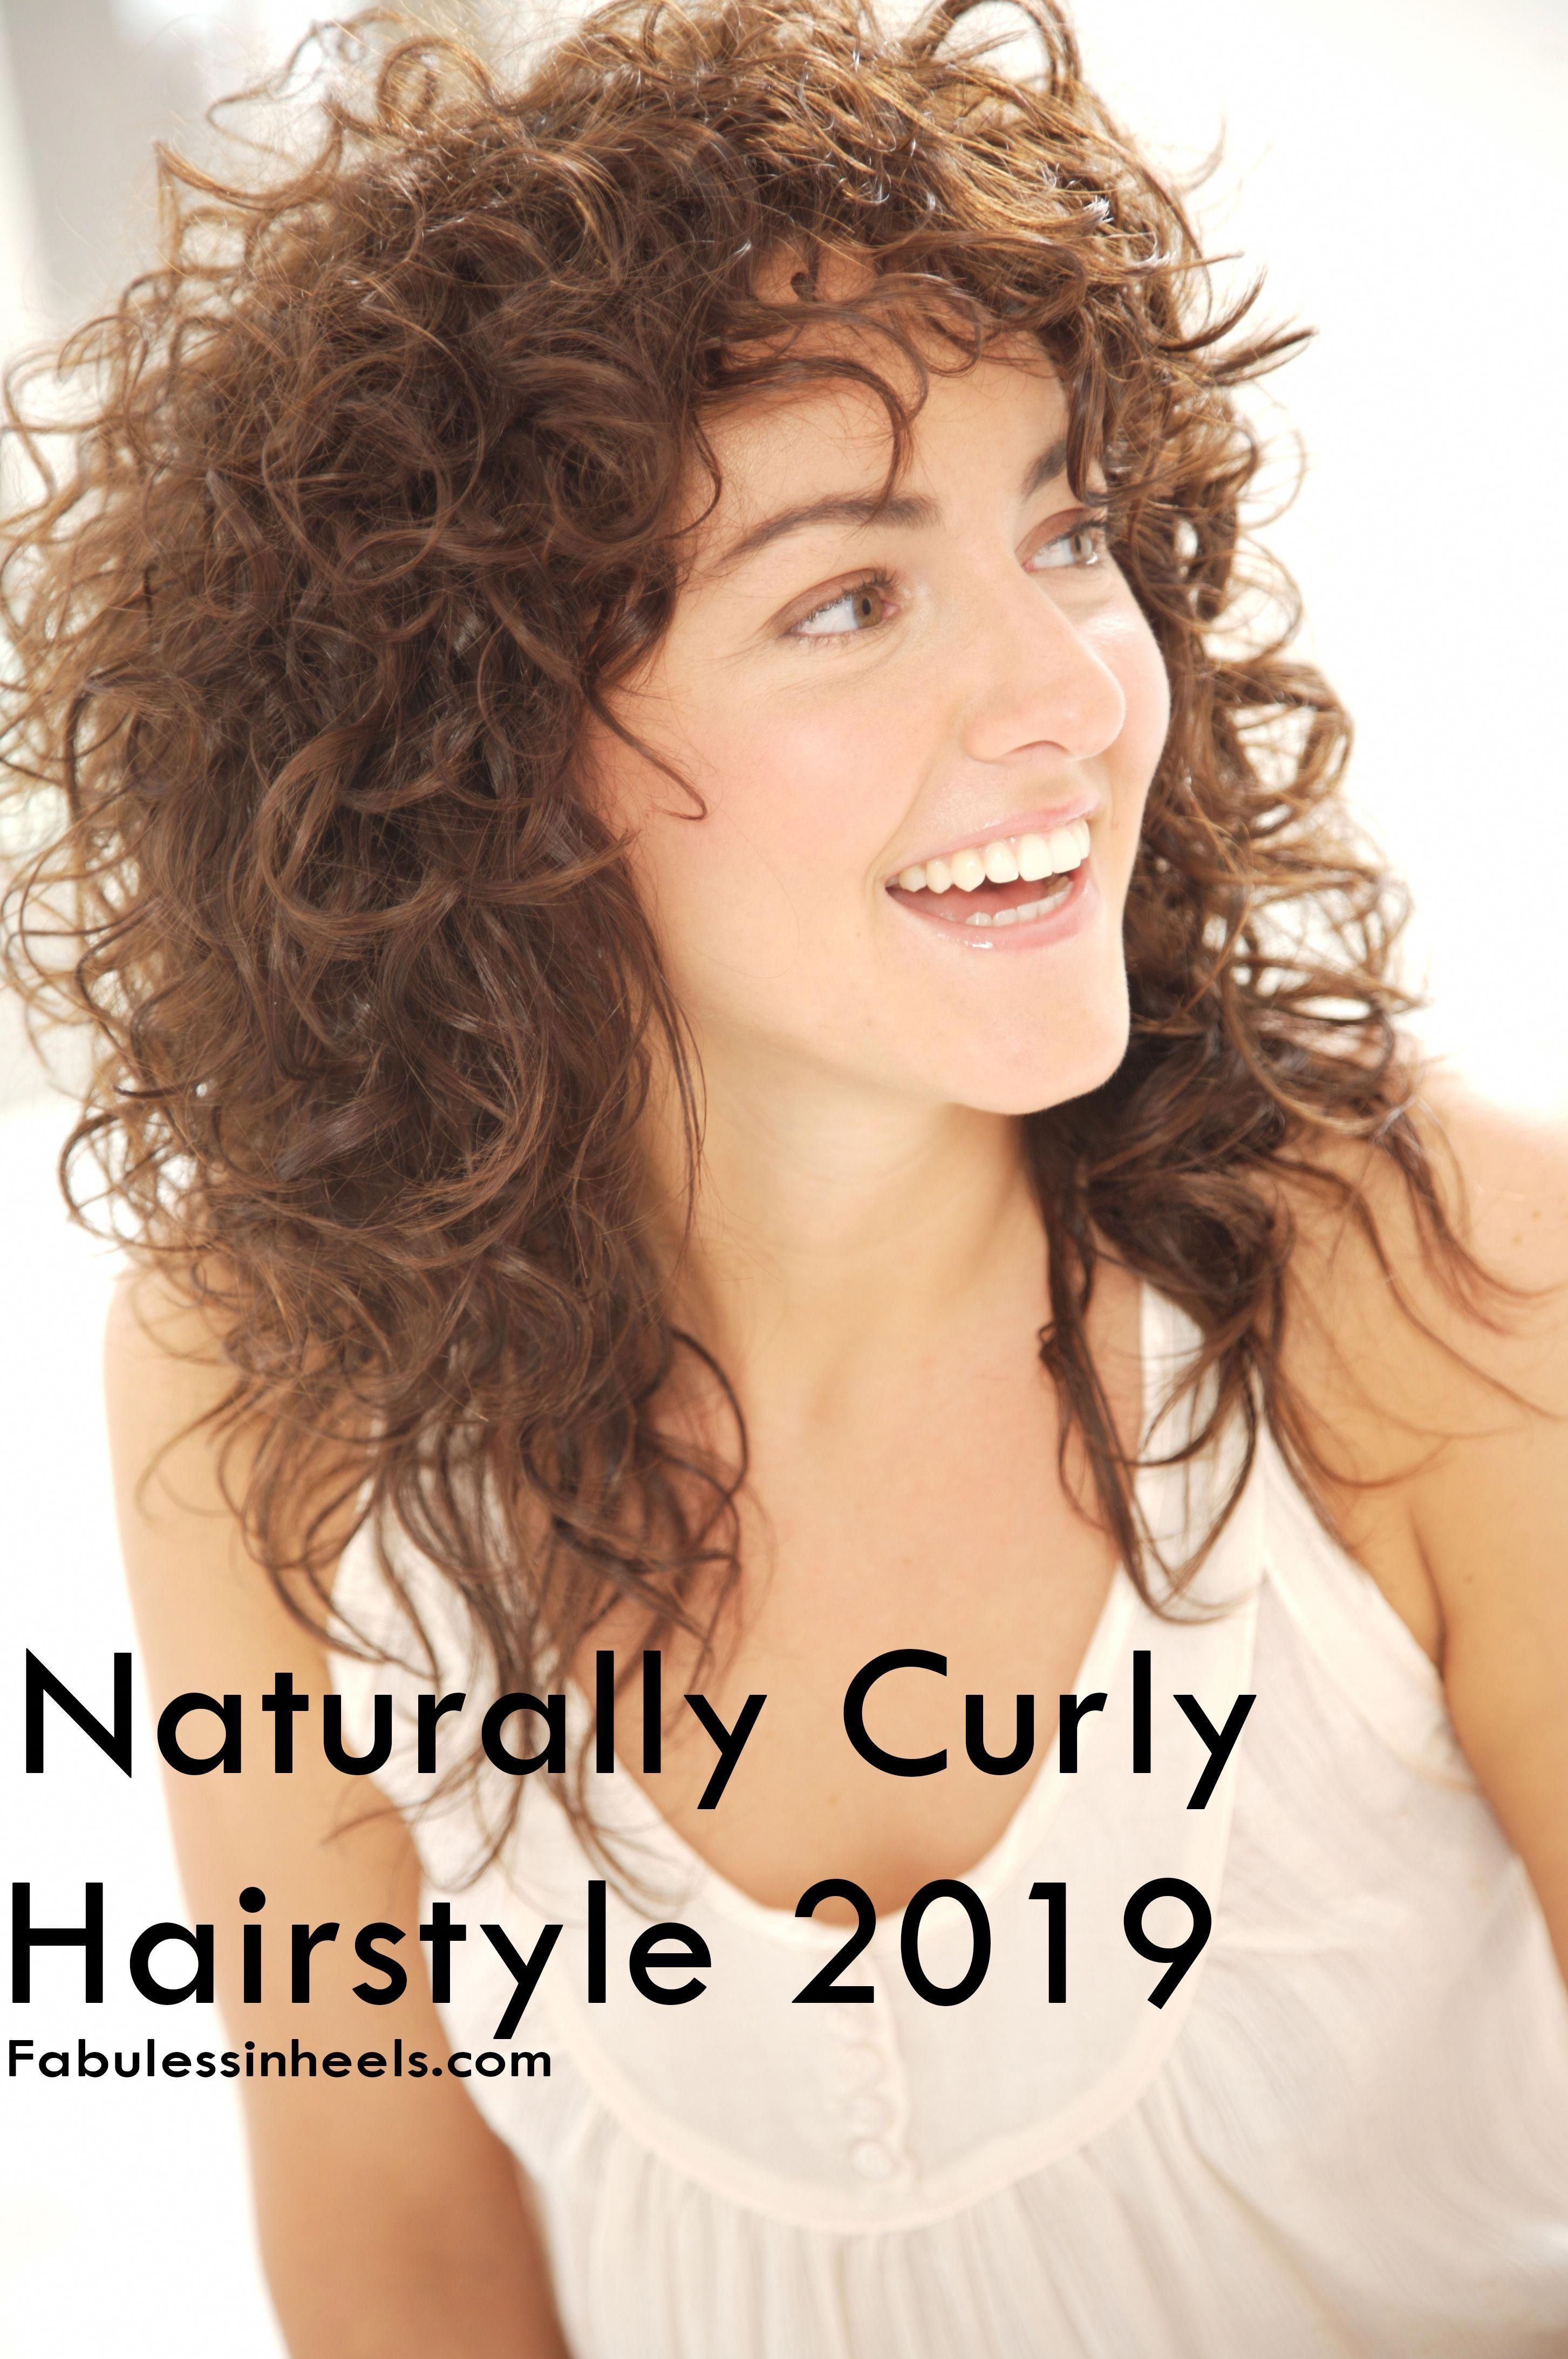 Naturally Curly Hair 2019 For Womens With Medium Length Hairstyle Hairstyleforwomen In 2020 Shoulder Length Curly Hair Curly Hair Styles Naturally Curly Hair Styles